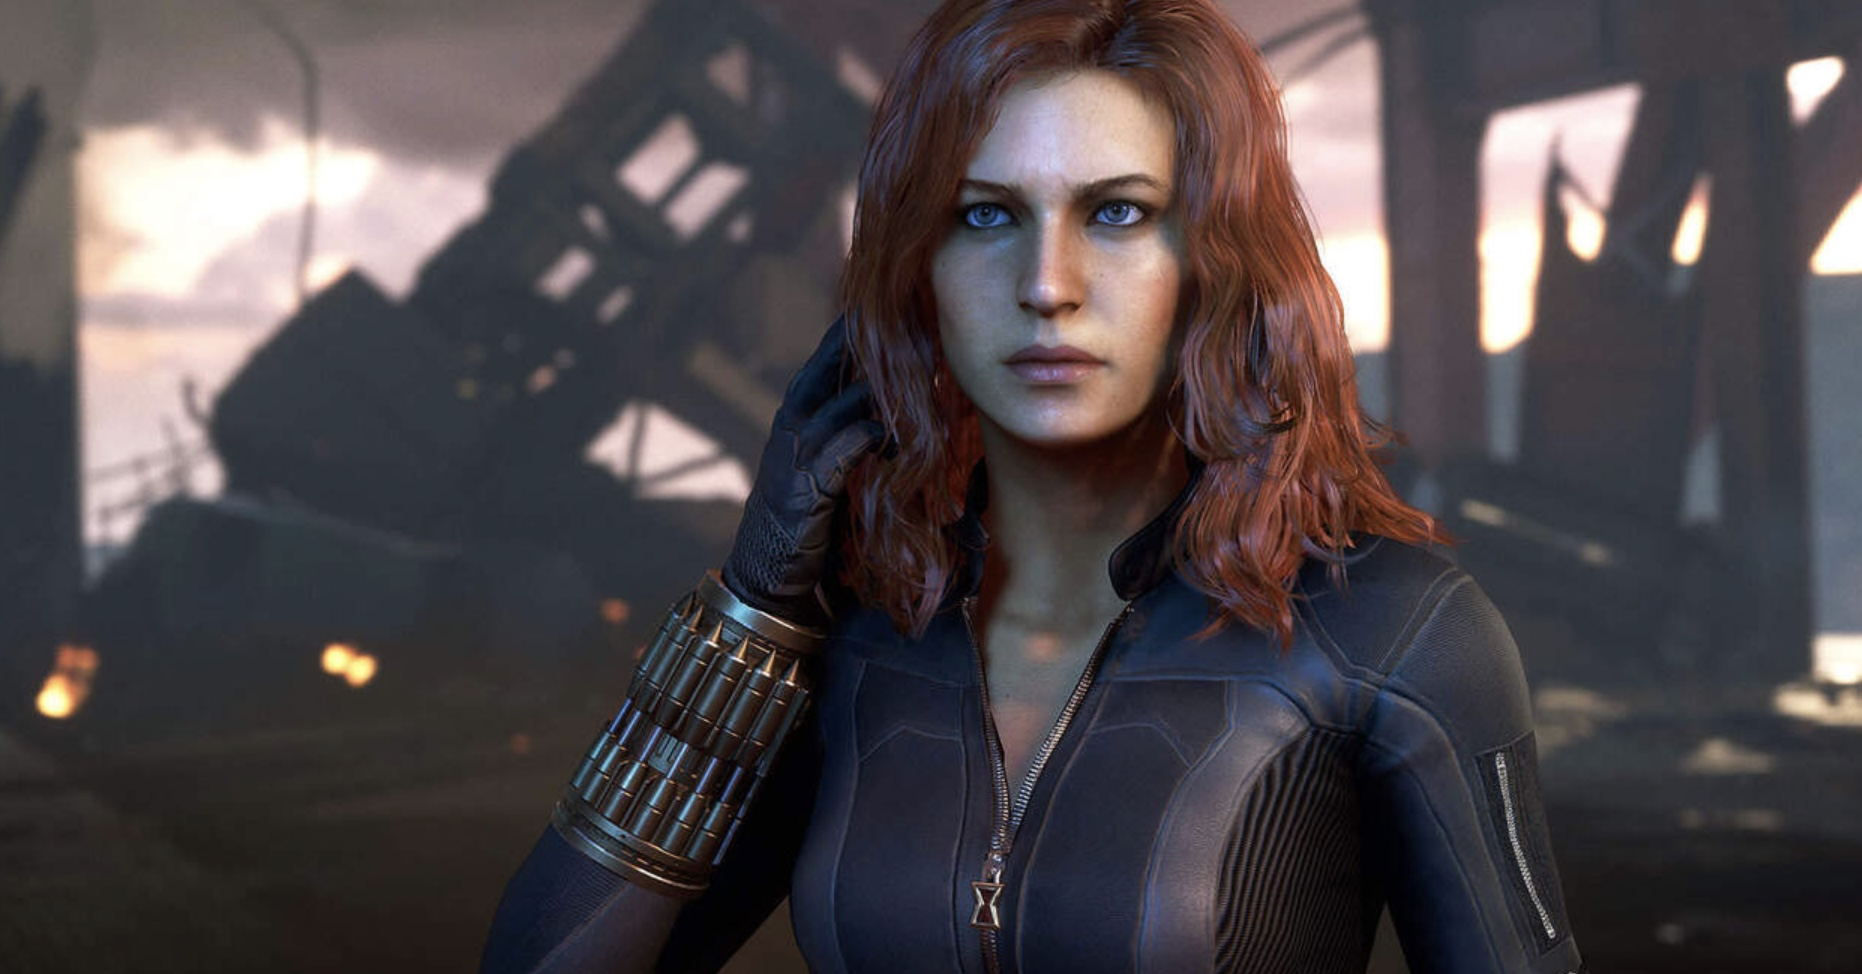 Marvel's Avengers Update 1.36 Patch Notes